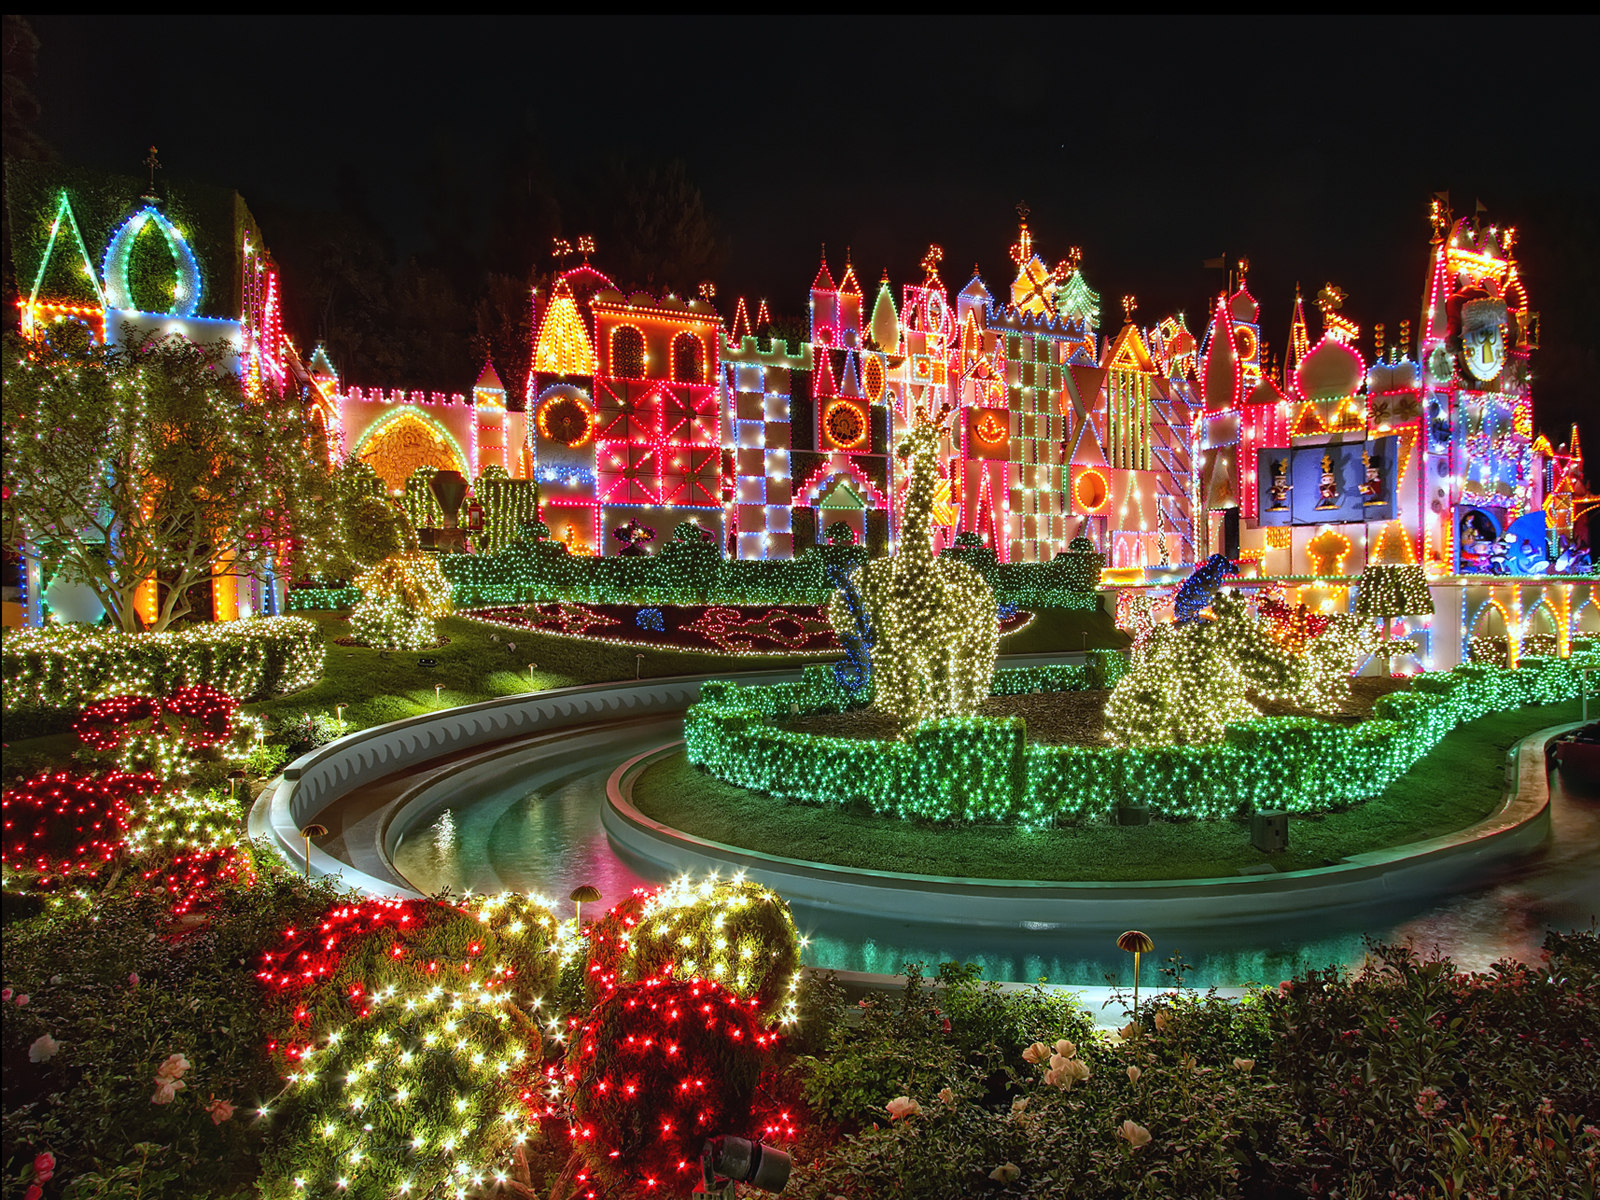 Colorful Christmas Lights in Disneyland Small World